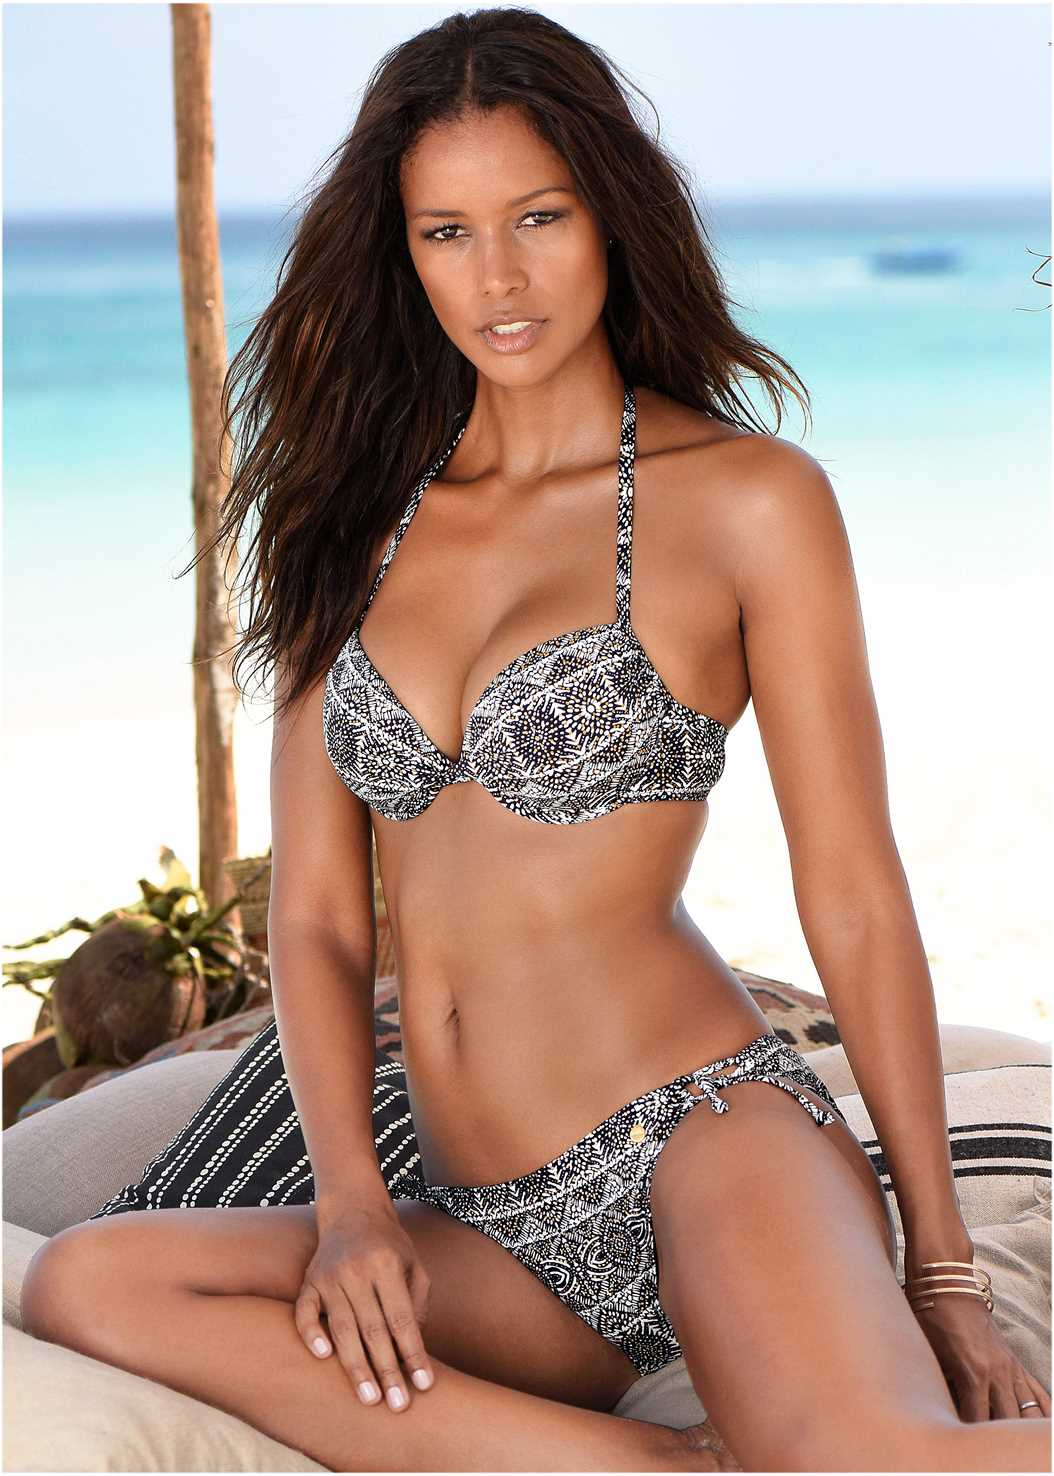 Push Up Bikini Top,Low Rise Ring Side Bottom,Low Rise Banded Bottom,Low Rise Ringed Bottom,Crochet Detail Cover-Up